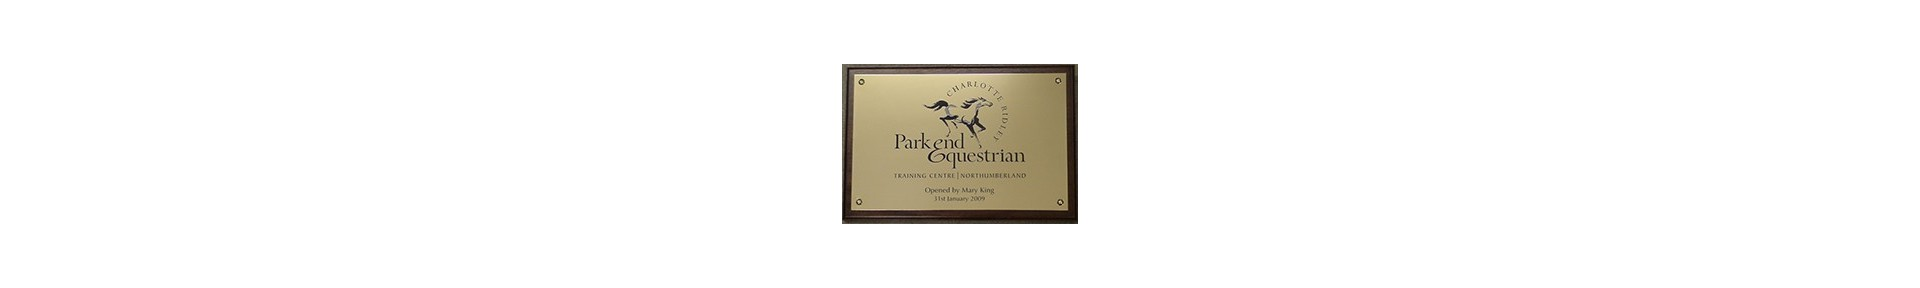 Custom Engraved Brass Signs, Plaques and Tags